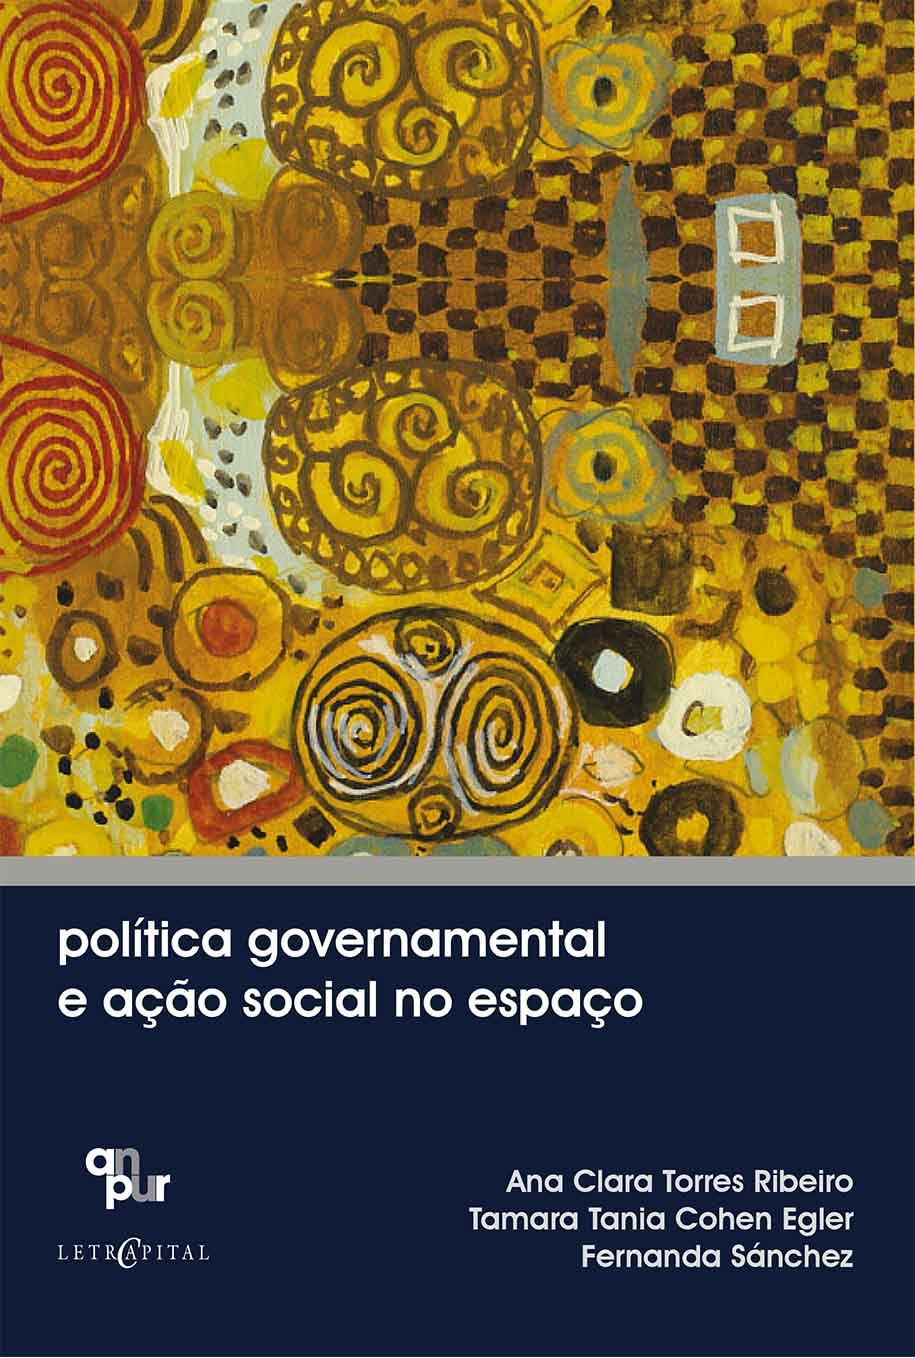 Política governamental e ação social no espaço